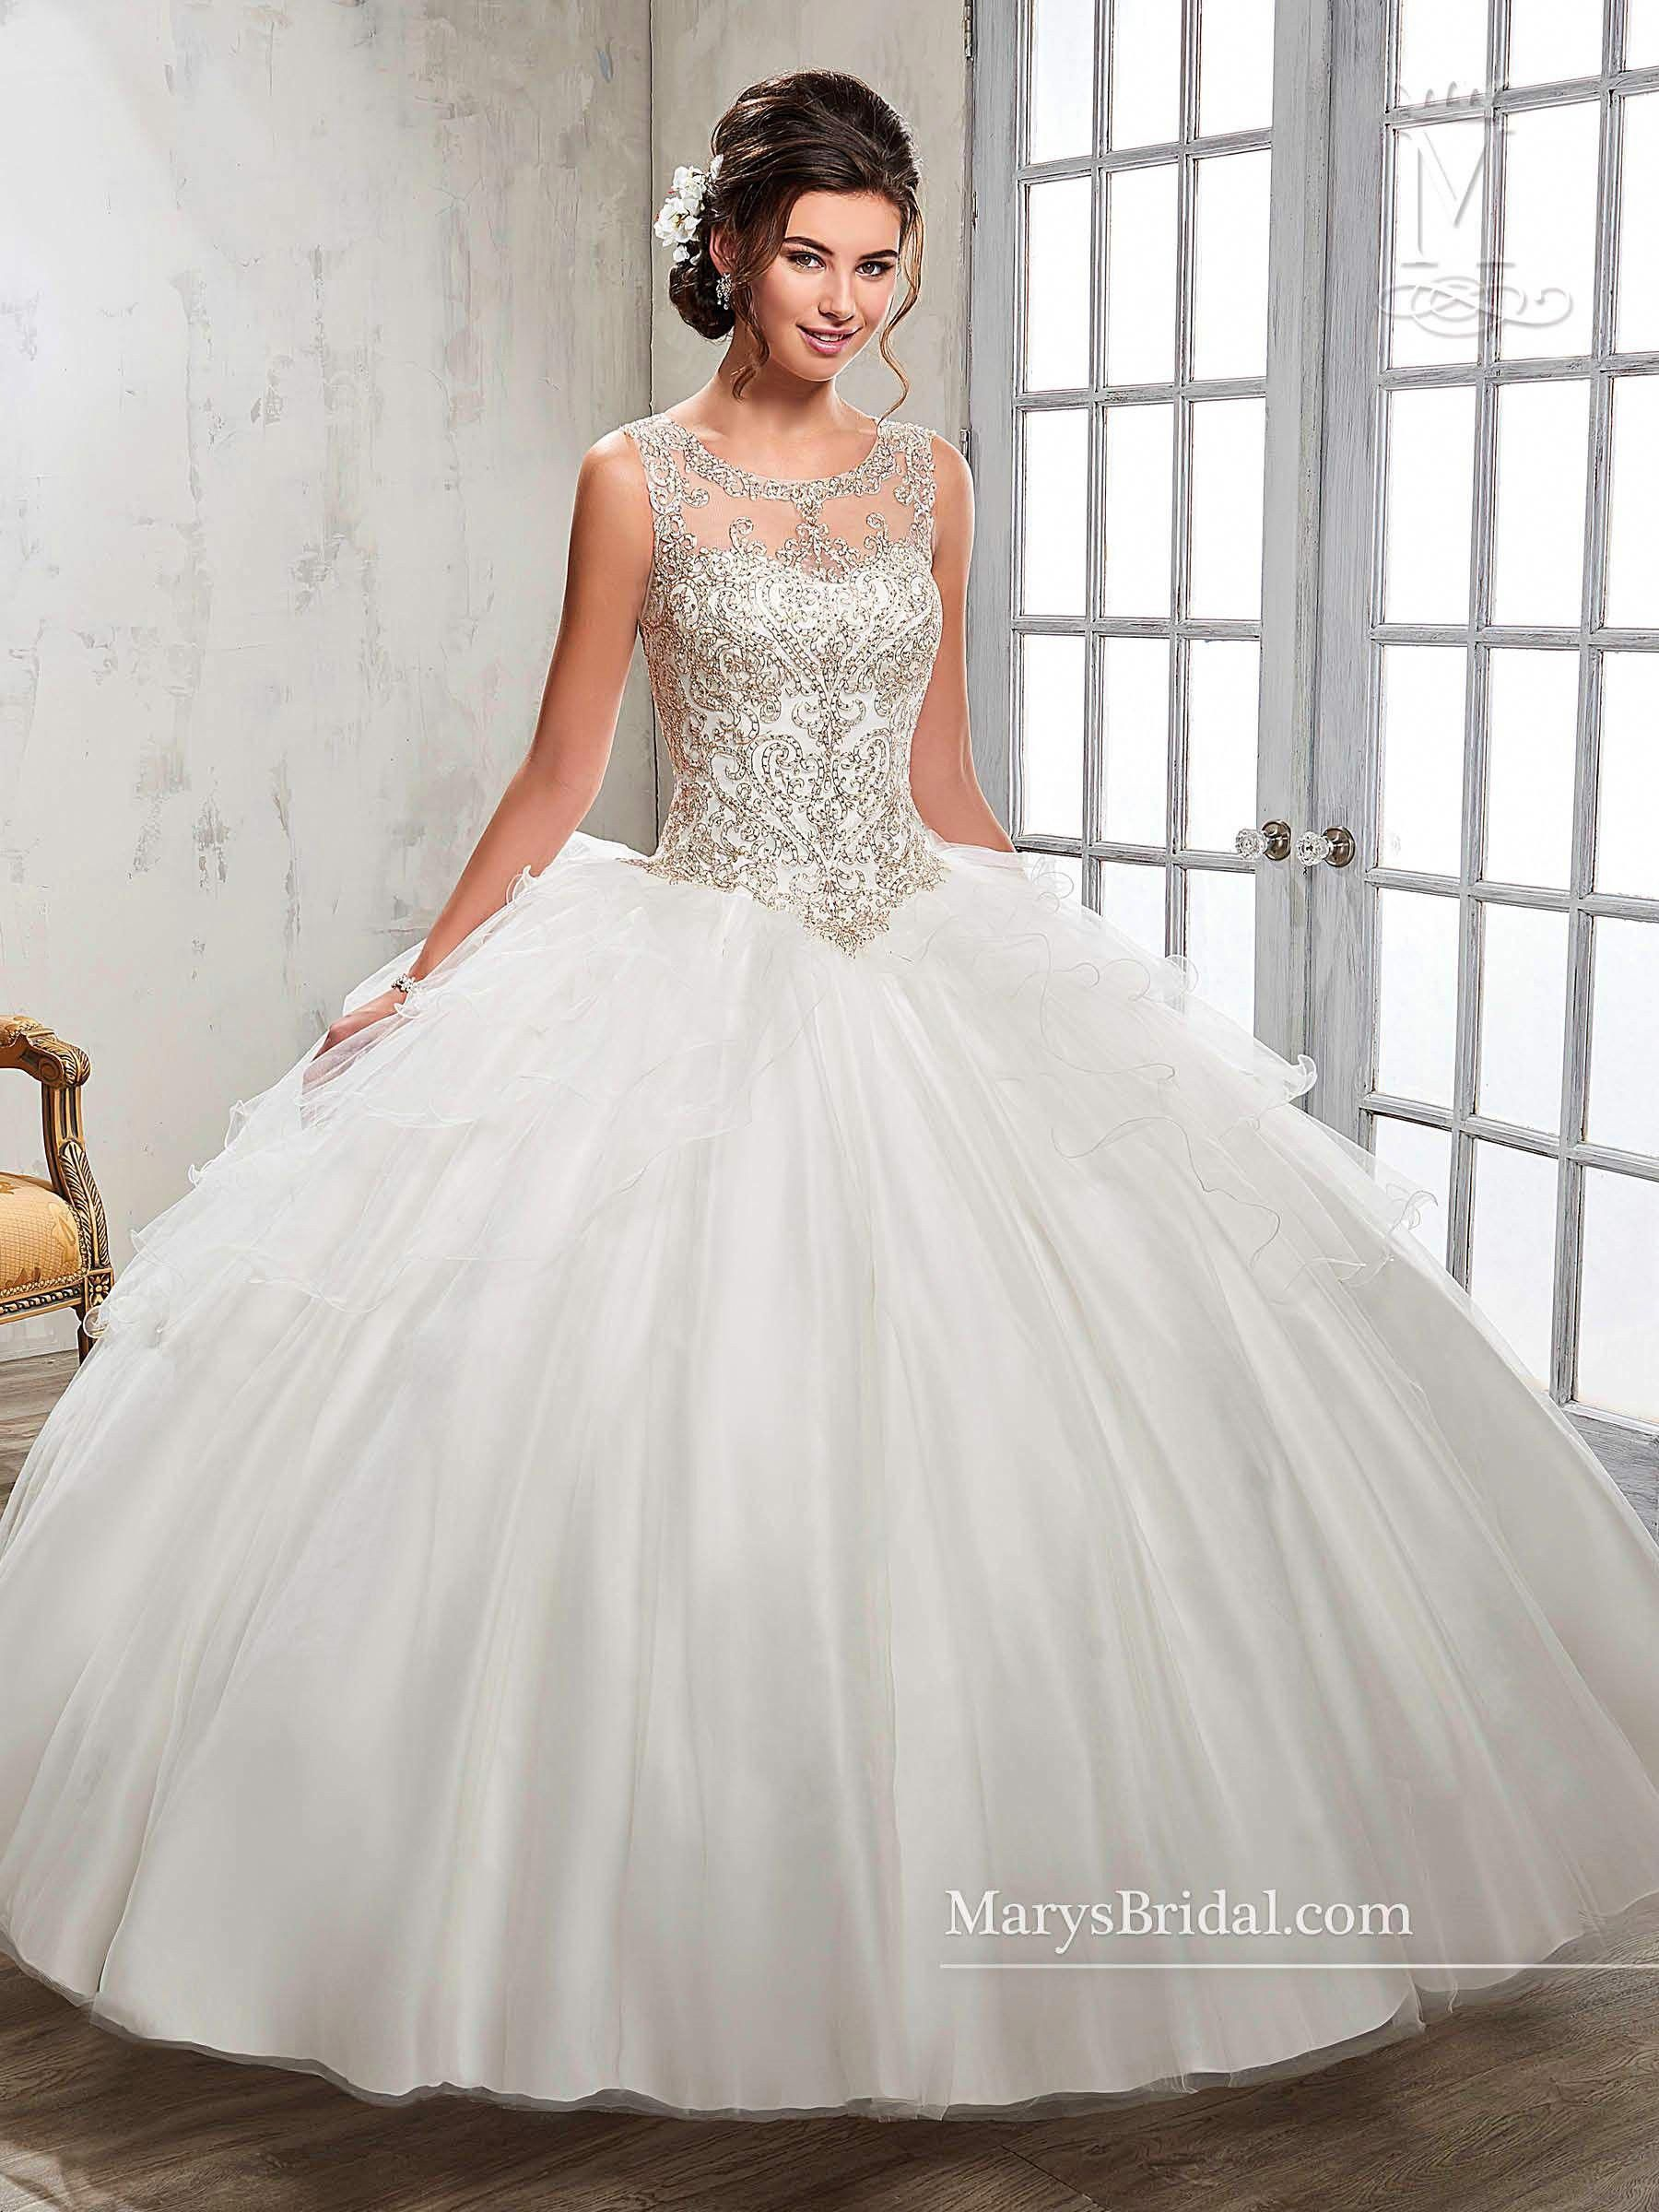 03216aae84c Illusion A-line Quinceanera Dress by Mary s Bridal Princess 4Q510   uniquequinceaneradresses